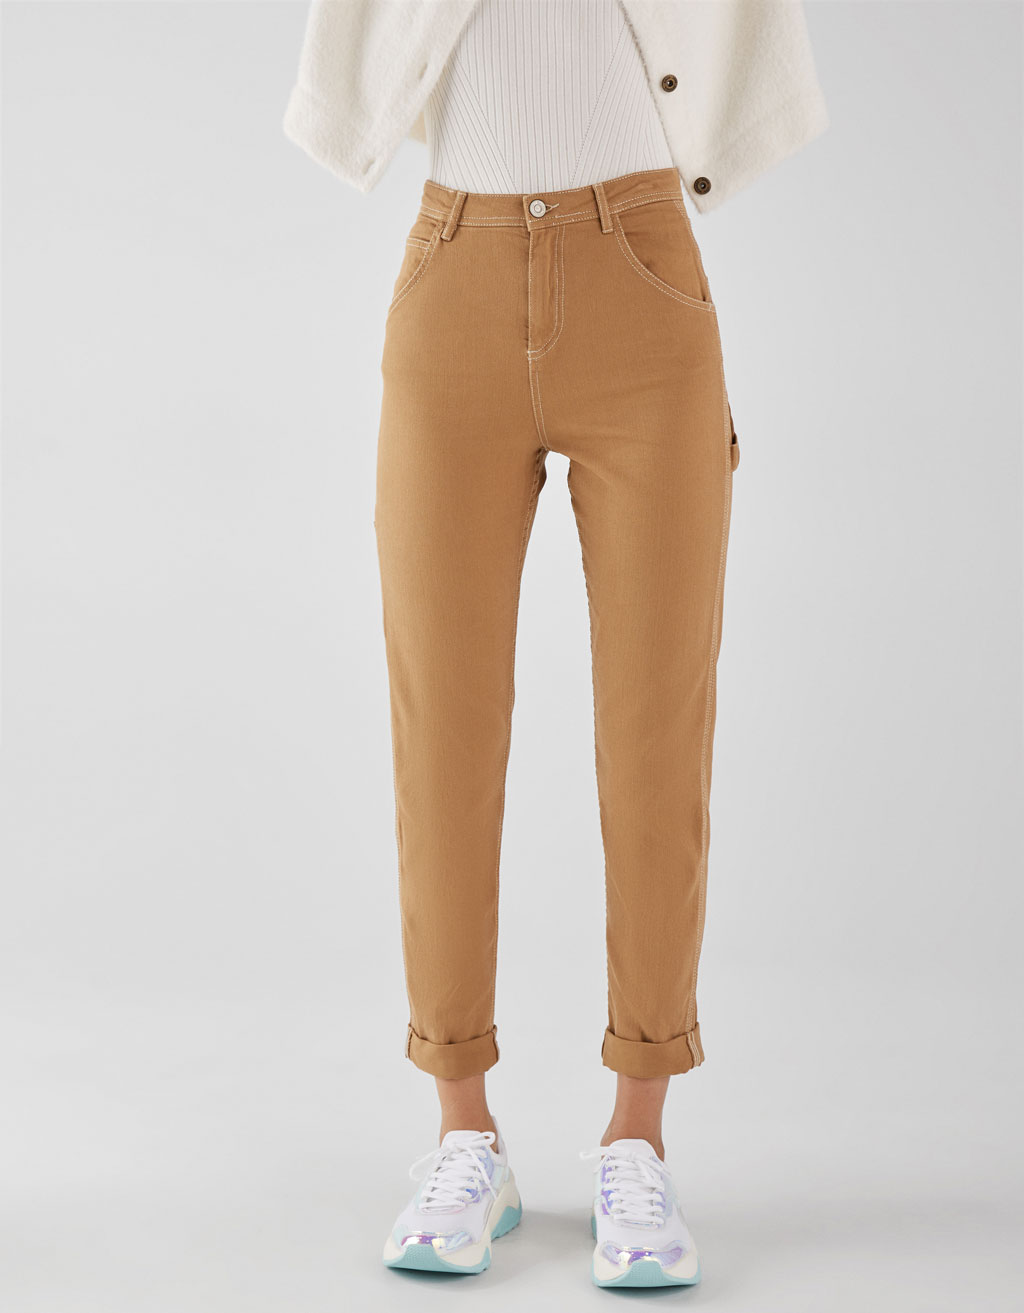 Contrasting Relaxed Fit Pants by Bershka